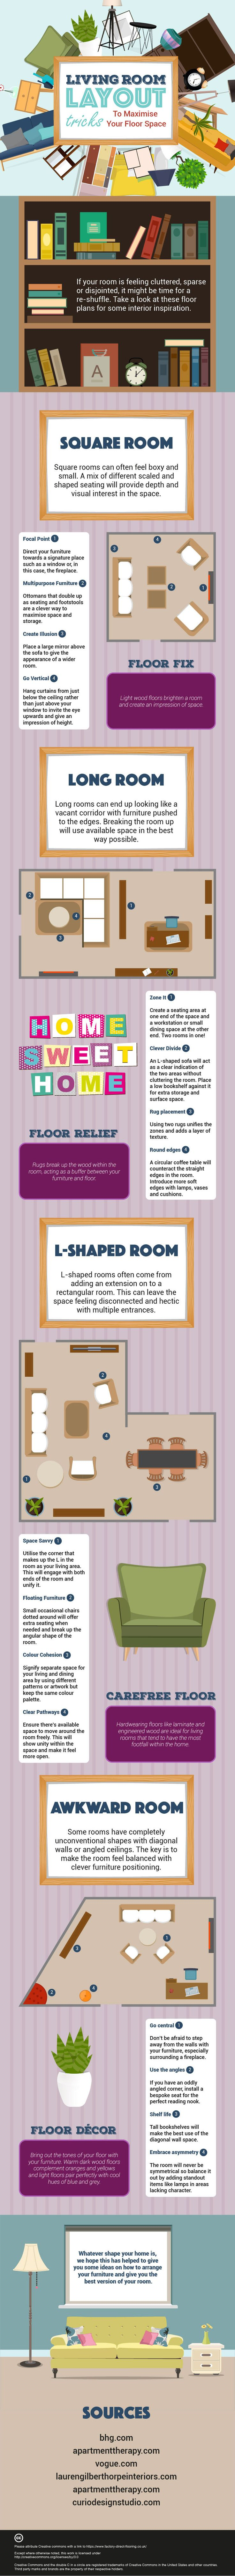 Living Room Layout Ideas To Maximize Your Space